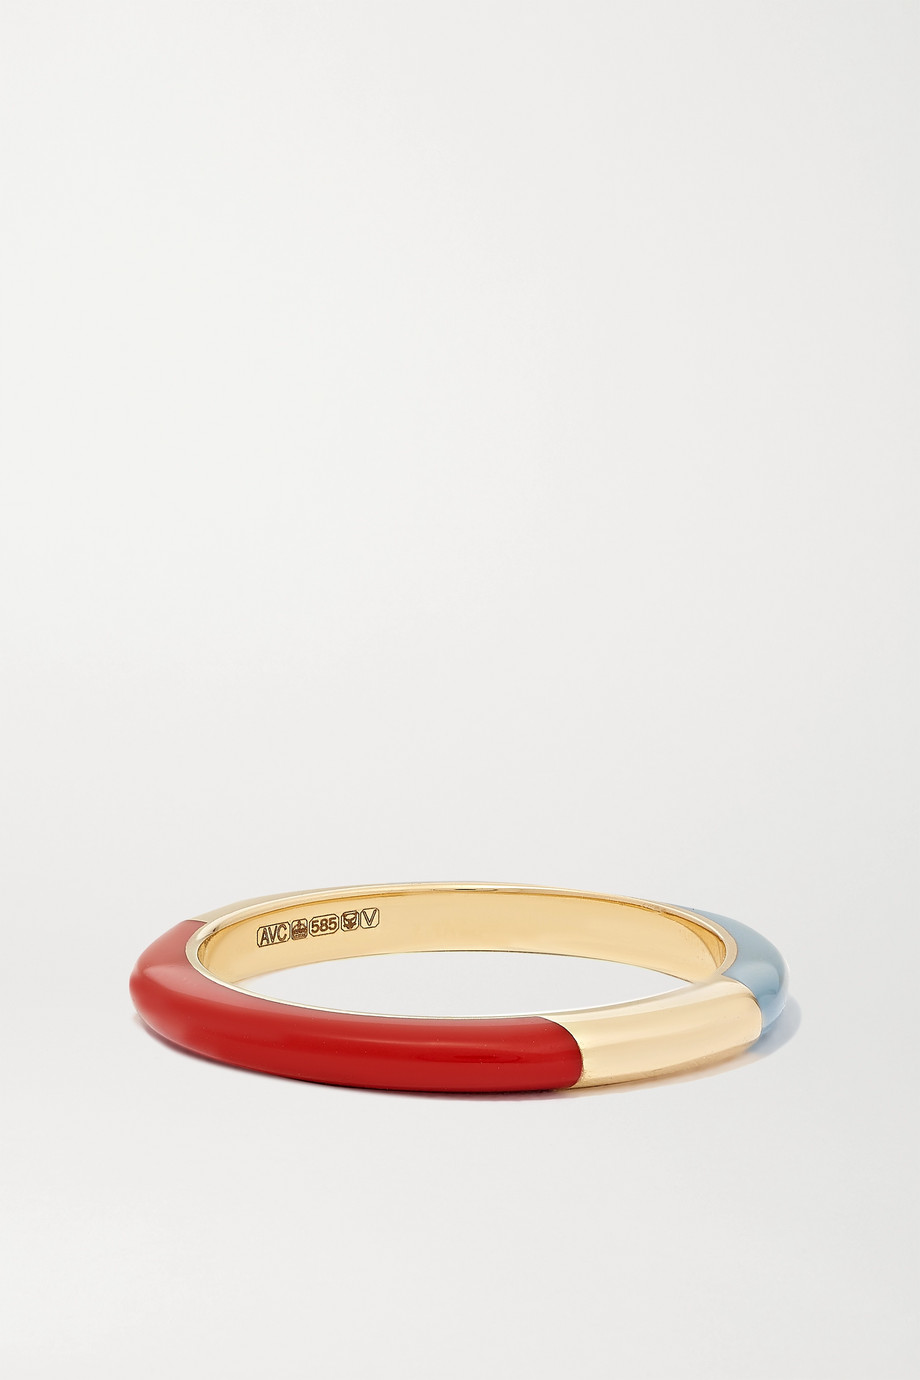 Alice Cicolini Candy 14-karat gold and enamel ring